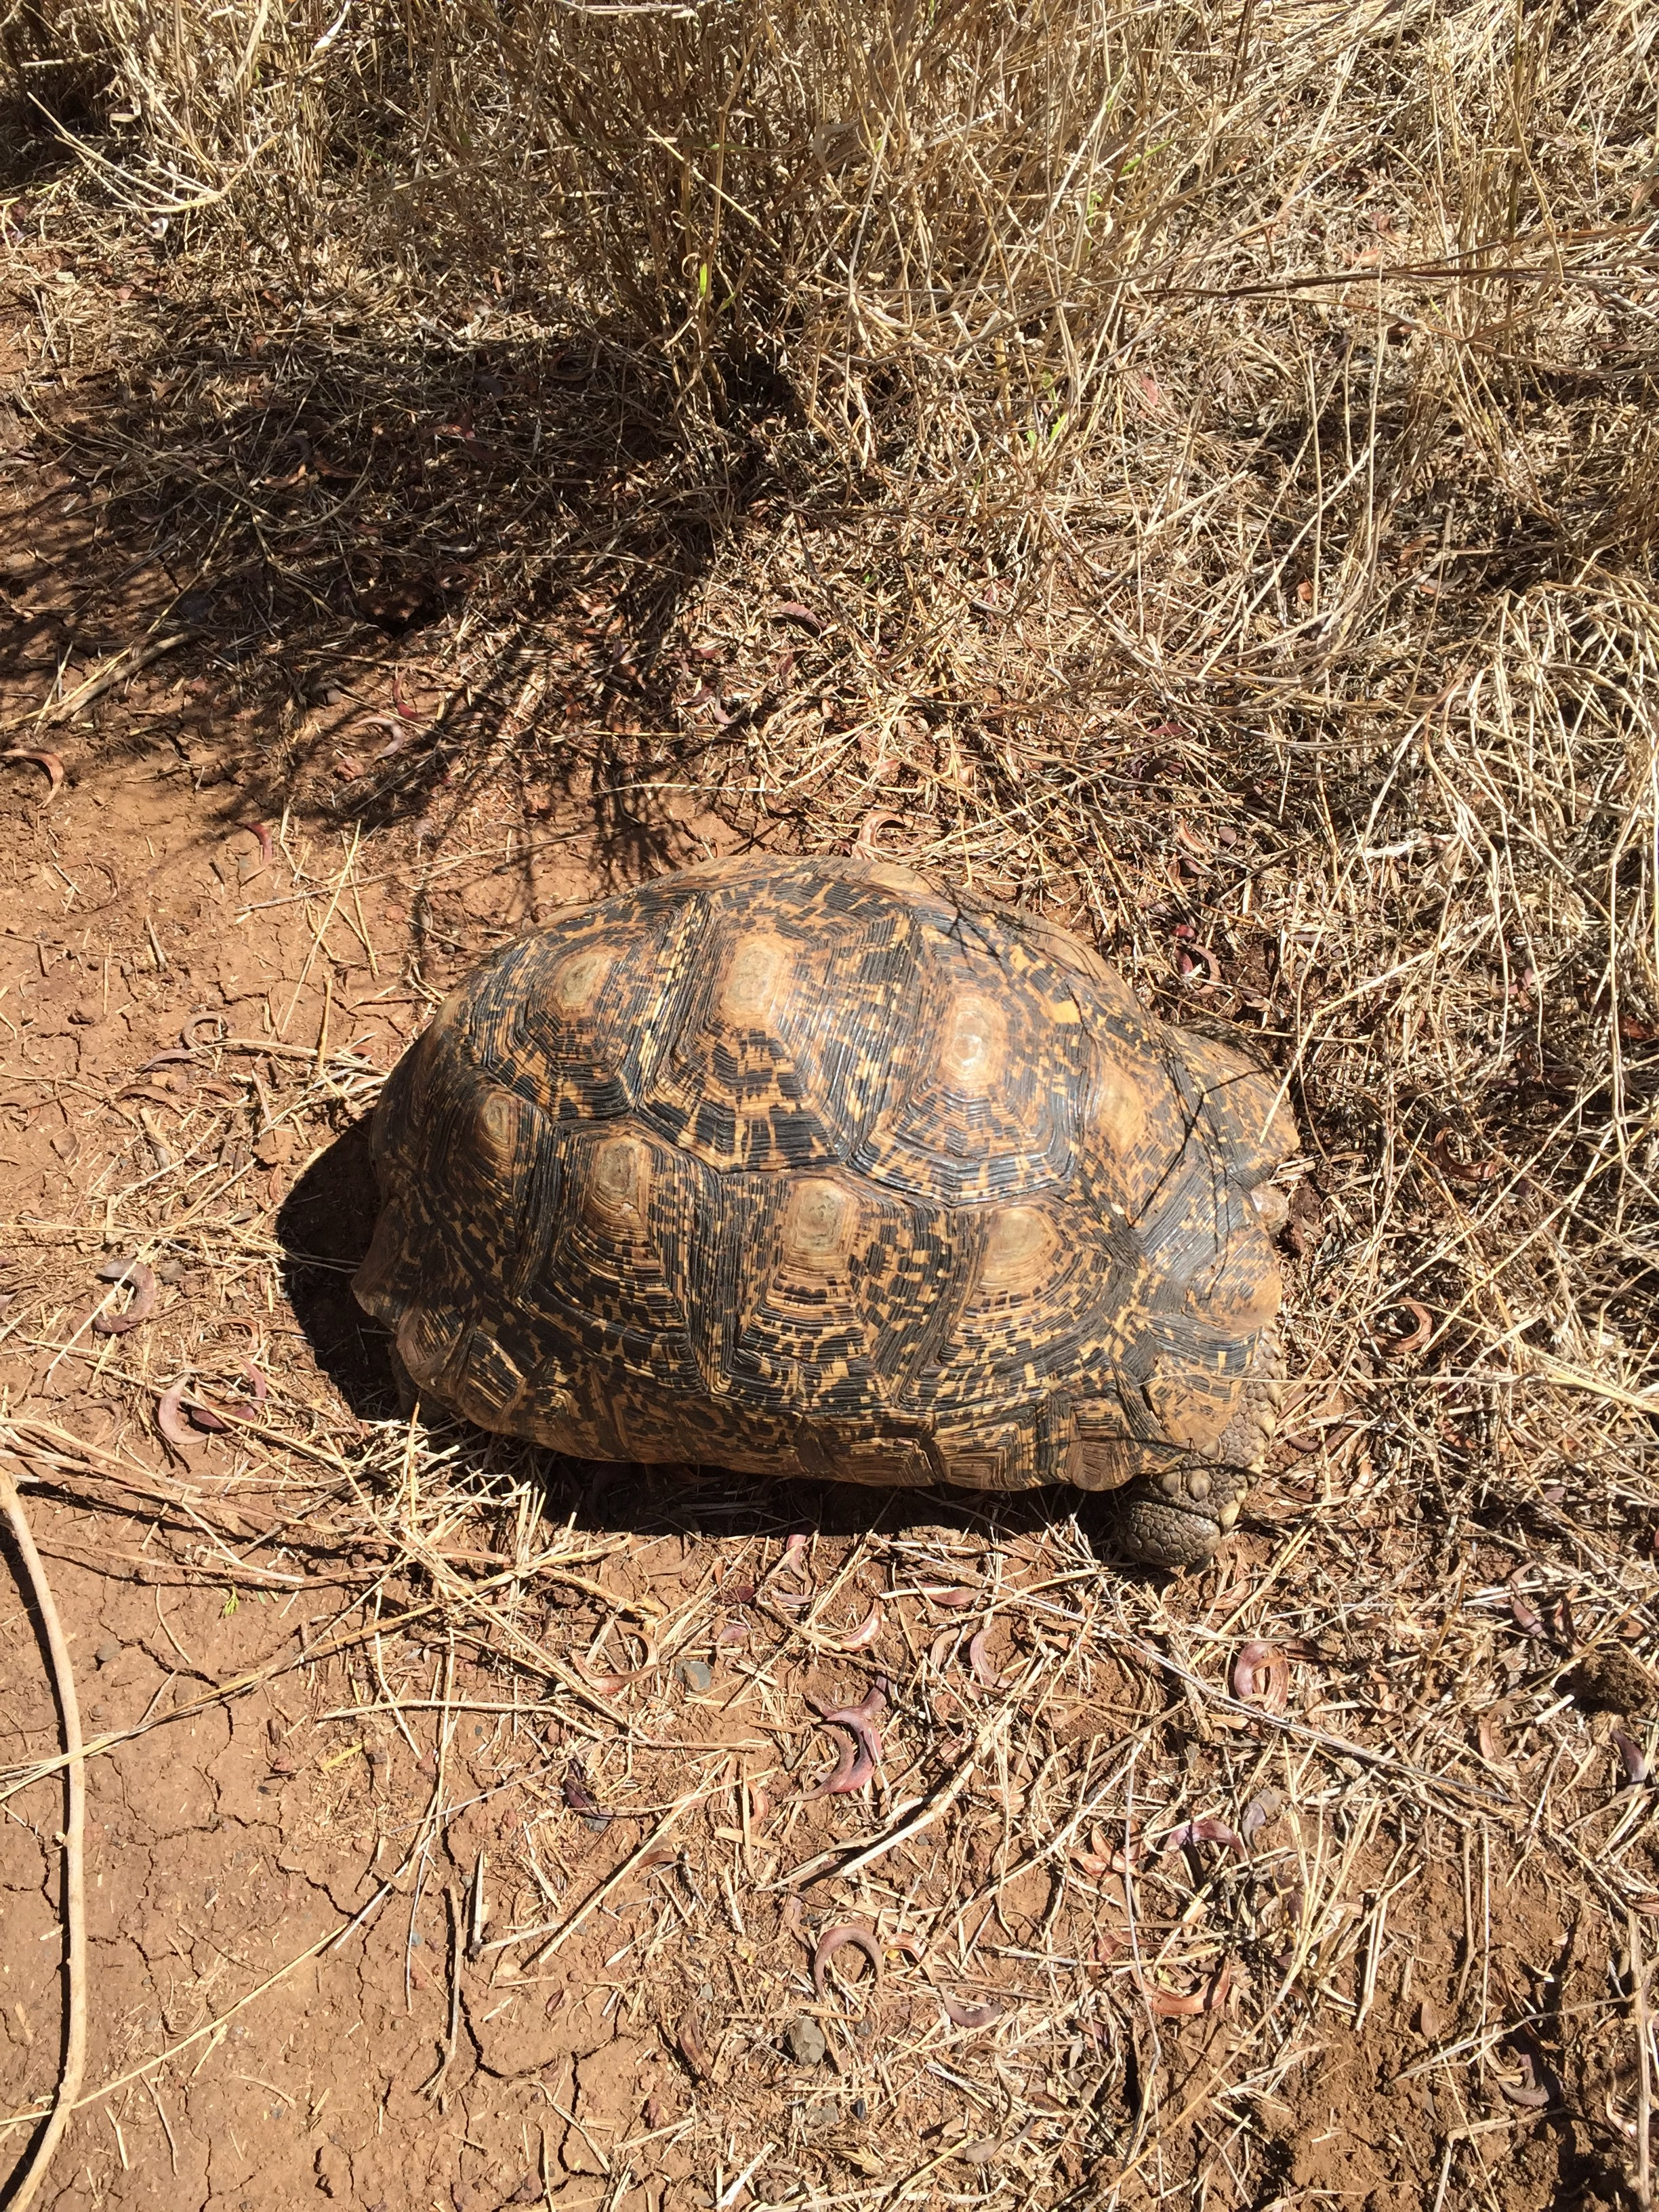 A friendly tortoise joined us for lunch.